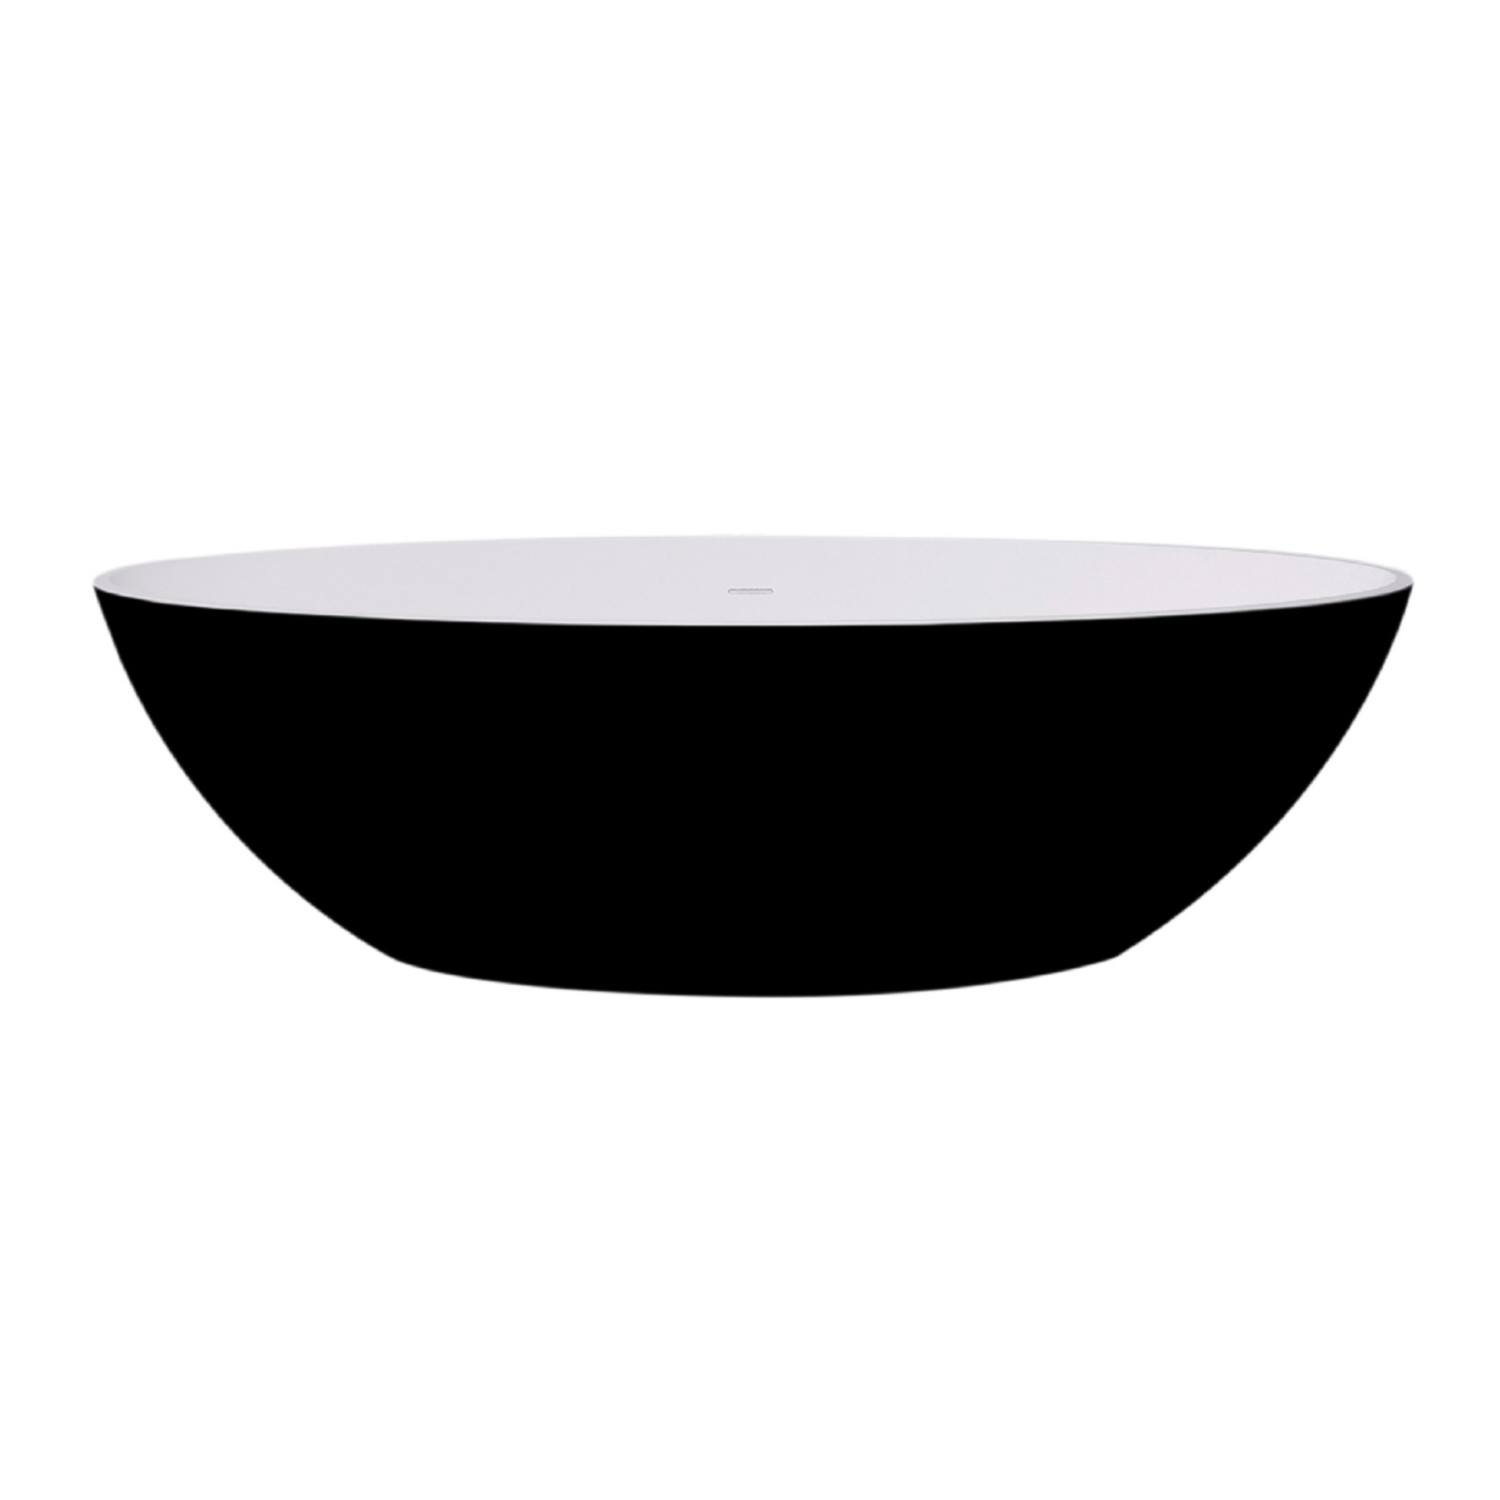 Vrijstaand Bad Best Design Solid Surface 180 x 85 cm Bicolor Mat Zwart/Wit